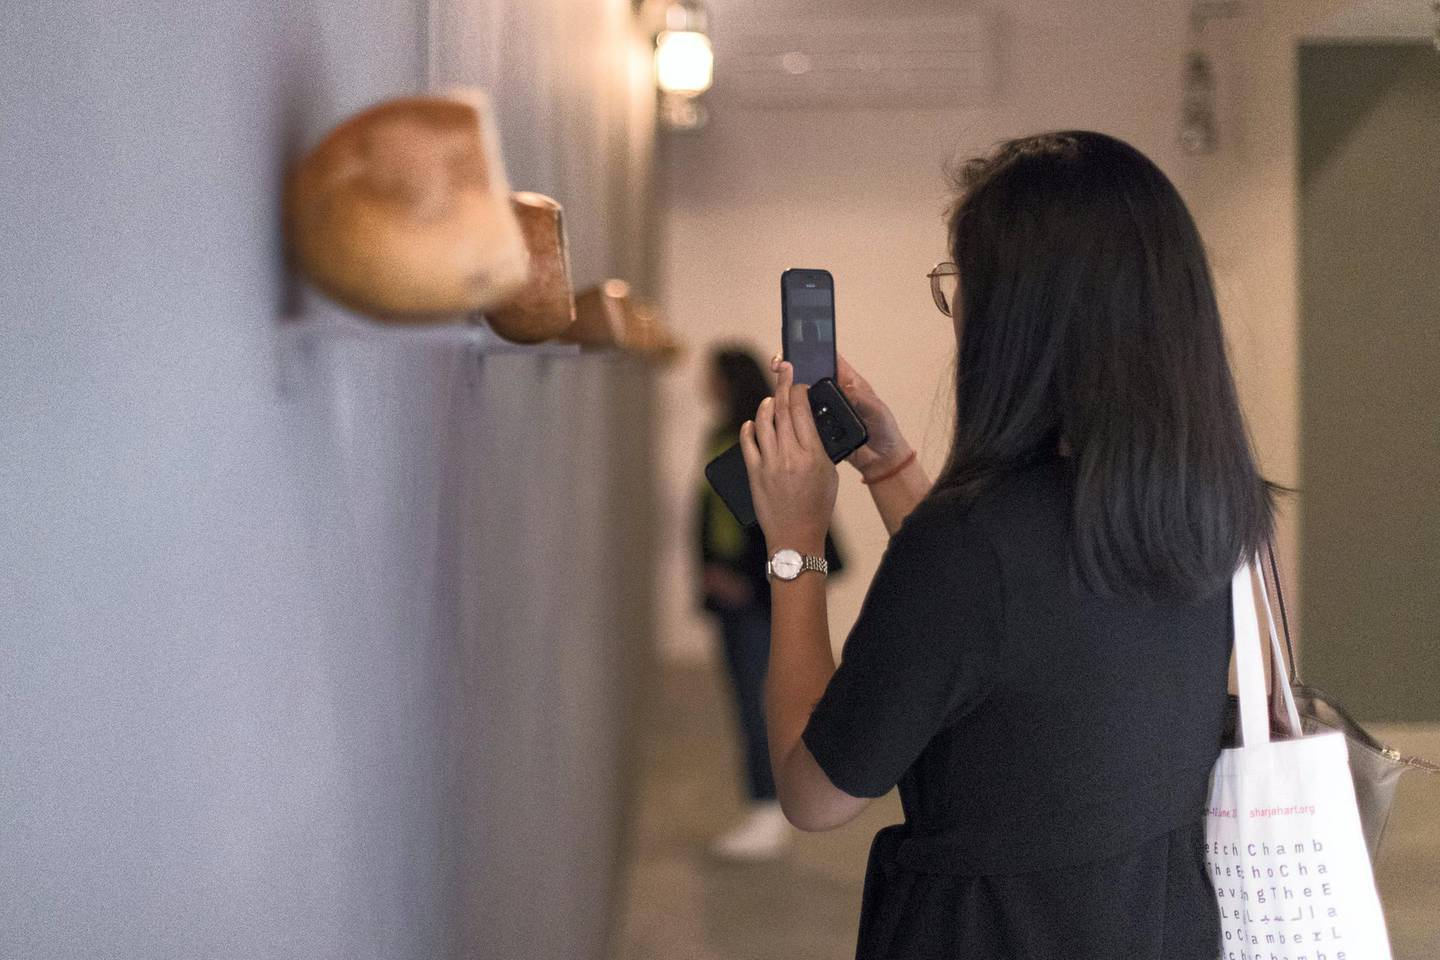 """SHARJAH, UNITED ARAB EMIRATES - March 6 2019.  Artworks showing at Sharjah Biennial 14 under the theme """"Leaving the Echo Chamber"""".  (Photo by Reem Mohammed/The National)  Reporter: MELISSA GRONLUND Section:  AC"""